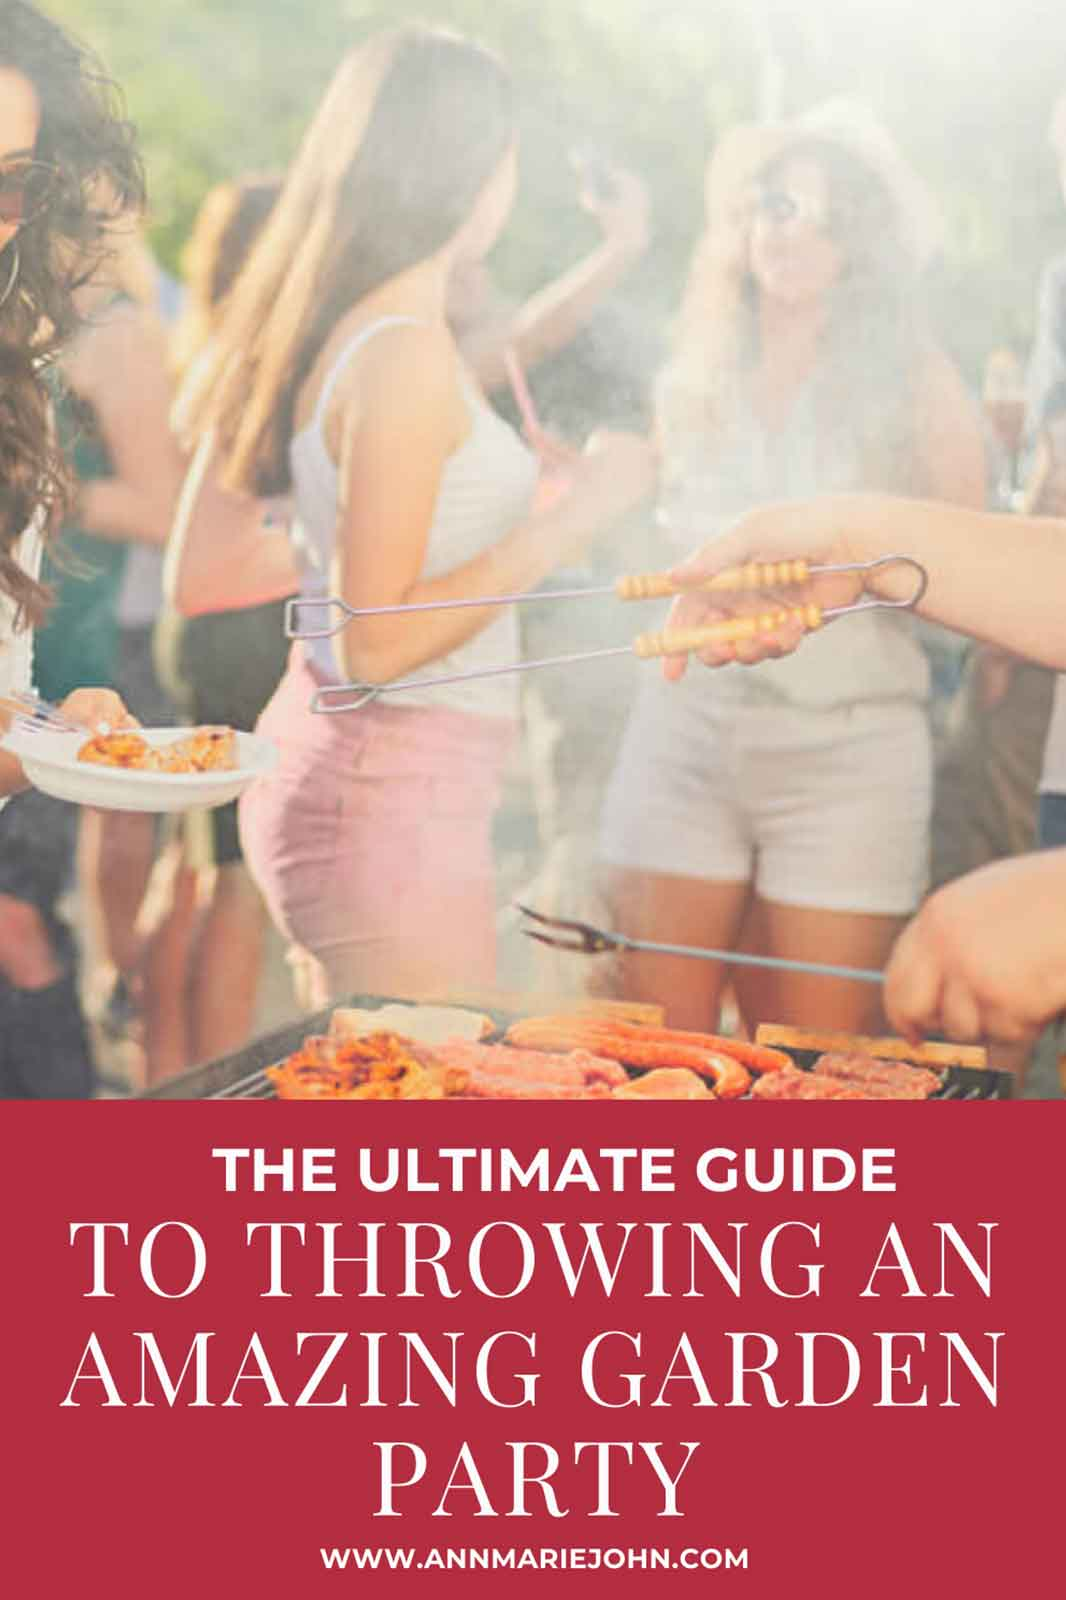 The Ultimate Guide To Throwing An Amazing Garden Party